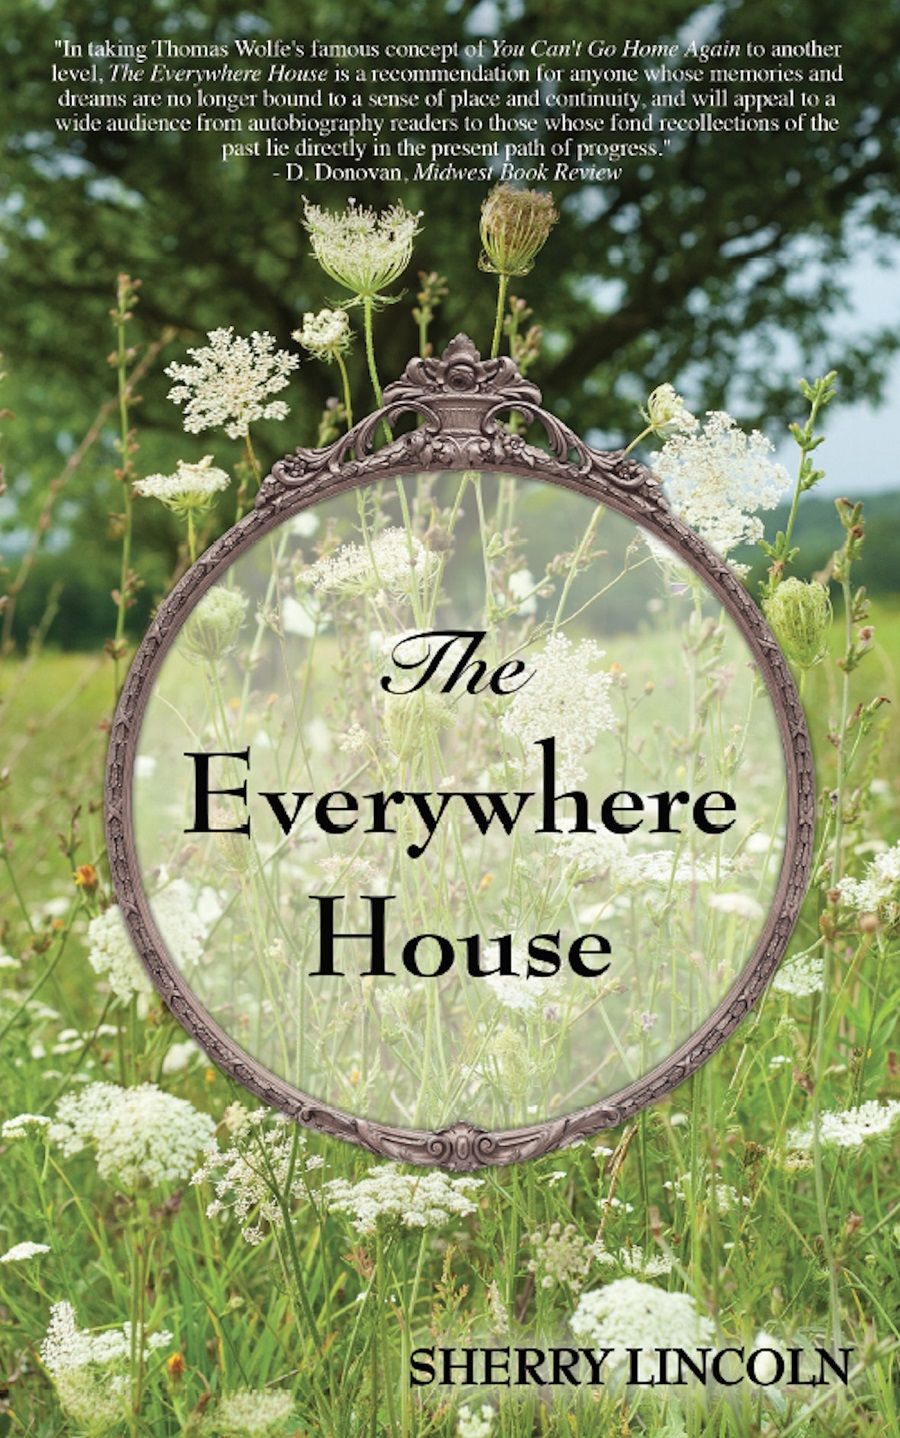 The Everywhere House